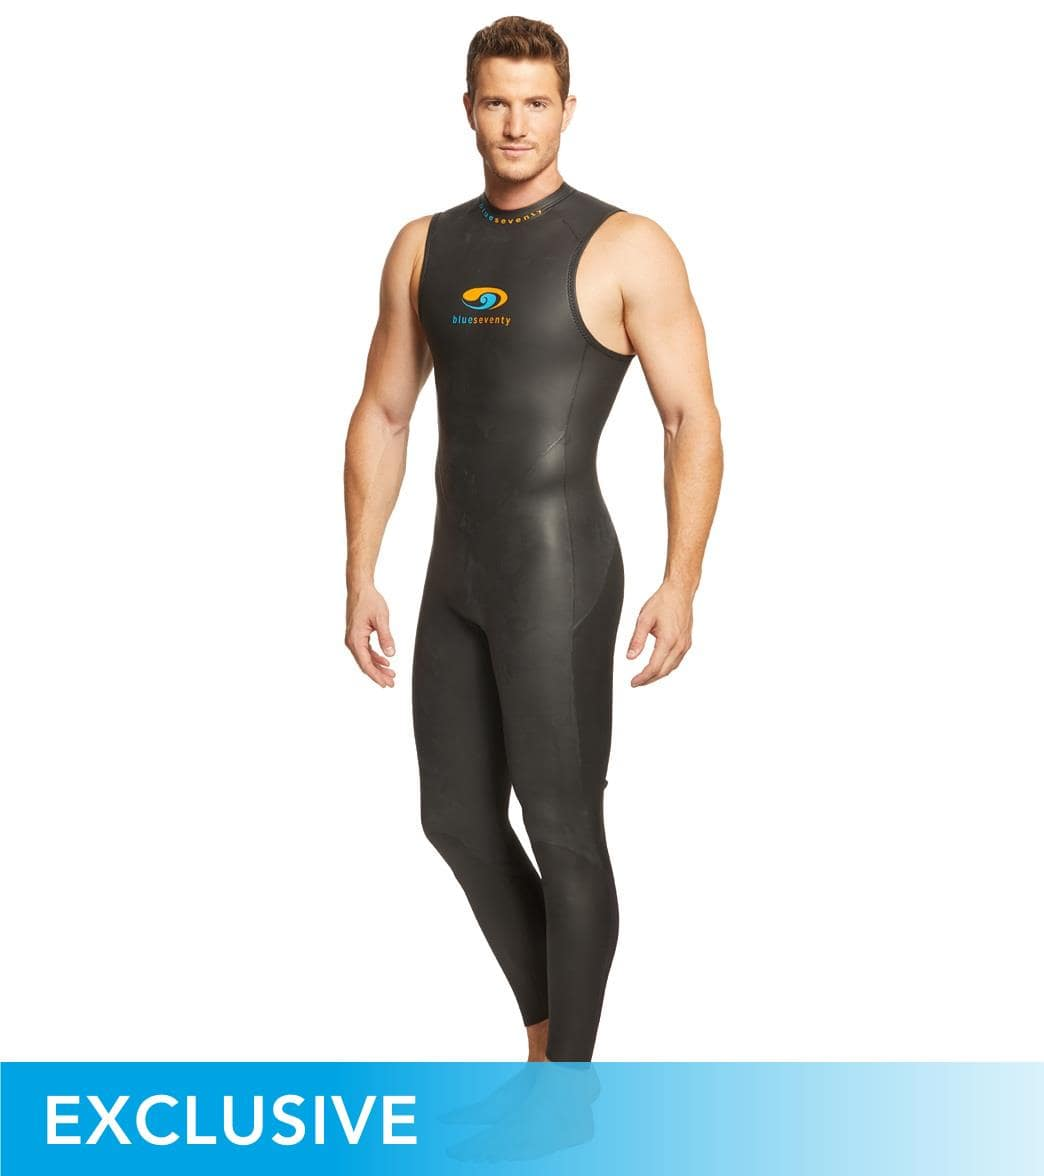 185d44a5ea Blueseventy Men's Exclusive Bolt Sleeveless Tri Wetsuit at SwimOutlet.com -  Free Shipping